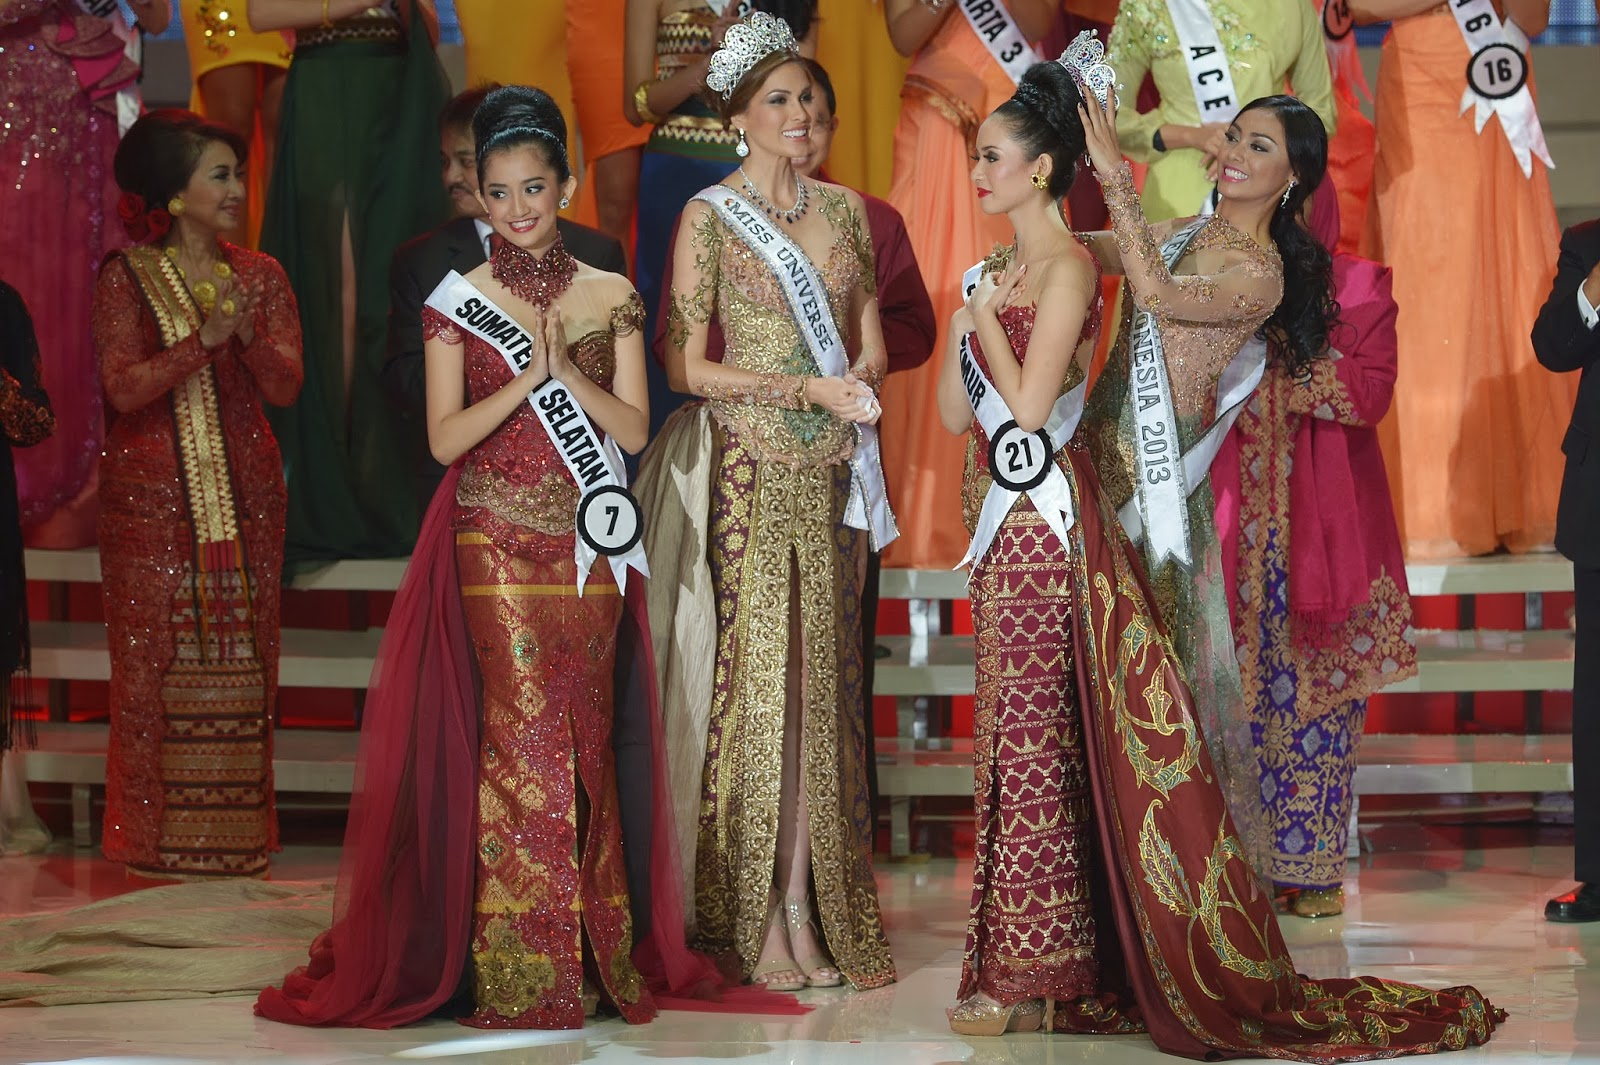 Beauty, Beauty Pageant, Compete, Contest, Crowned, Elvira Devinamira, Indonesia, Jakarta, Maria Gabriela Isler, Miss, Miss Puteri Indonesia 2014, Miss Universe 2014, Showbiz,